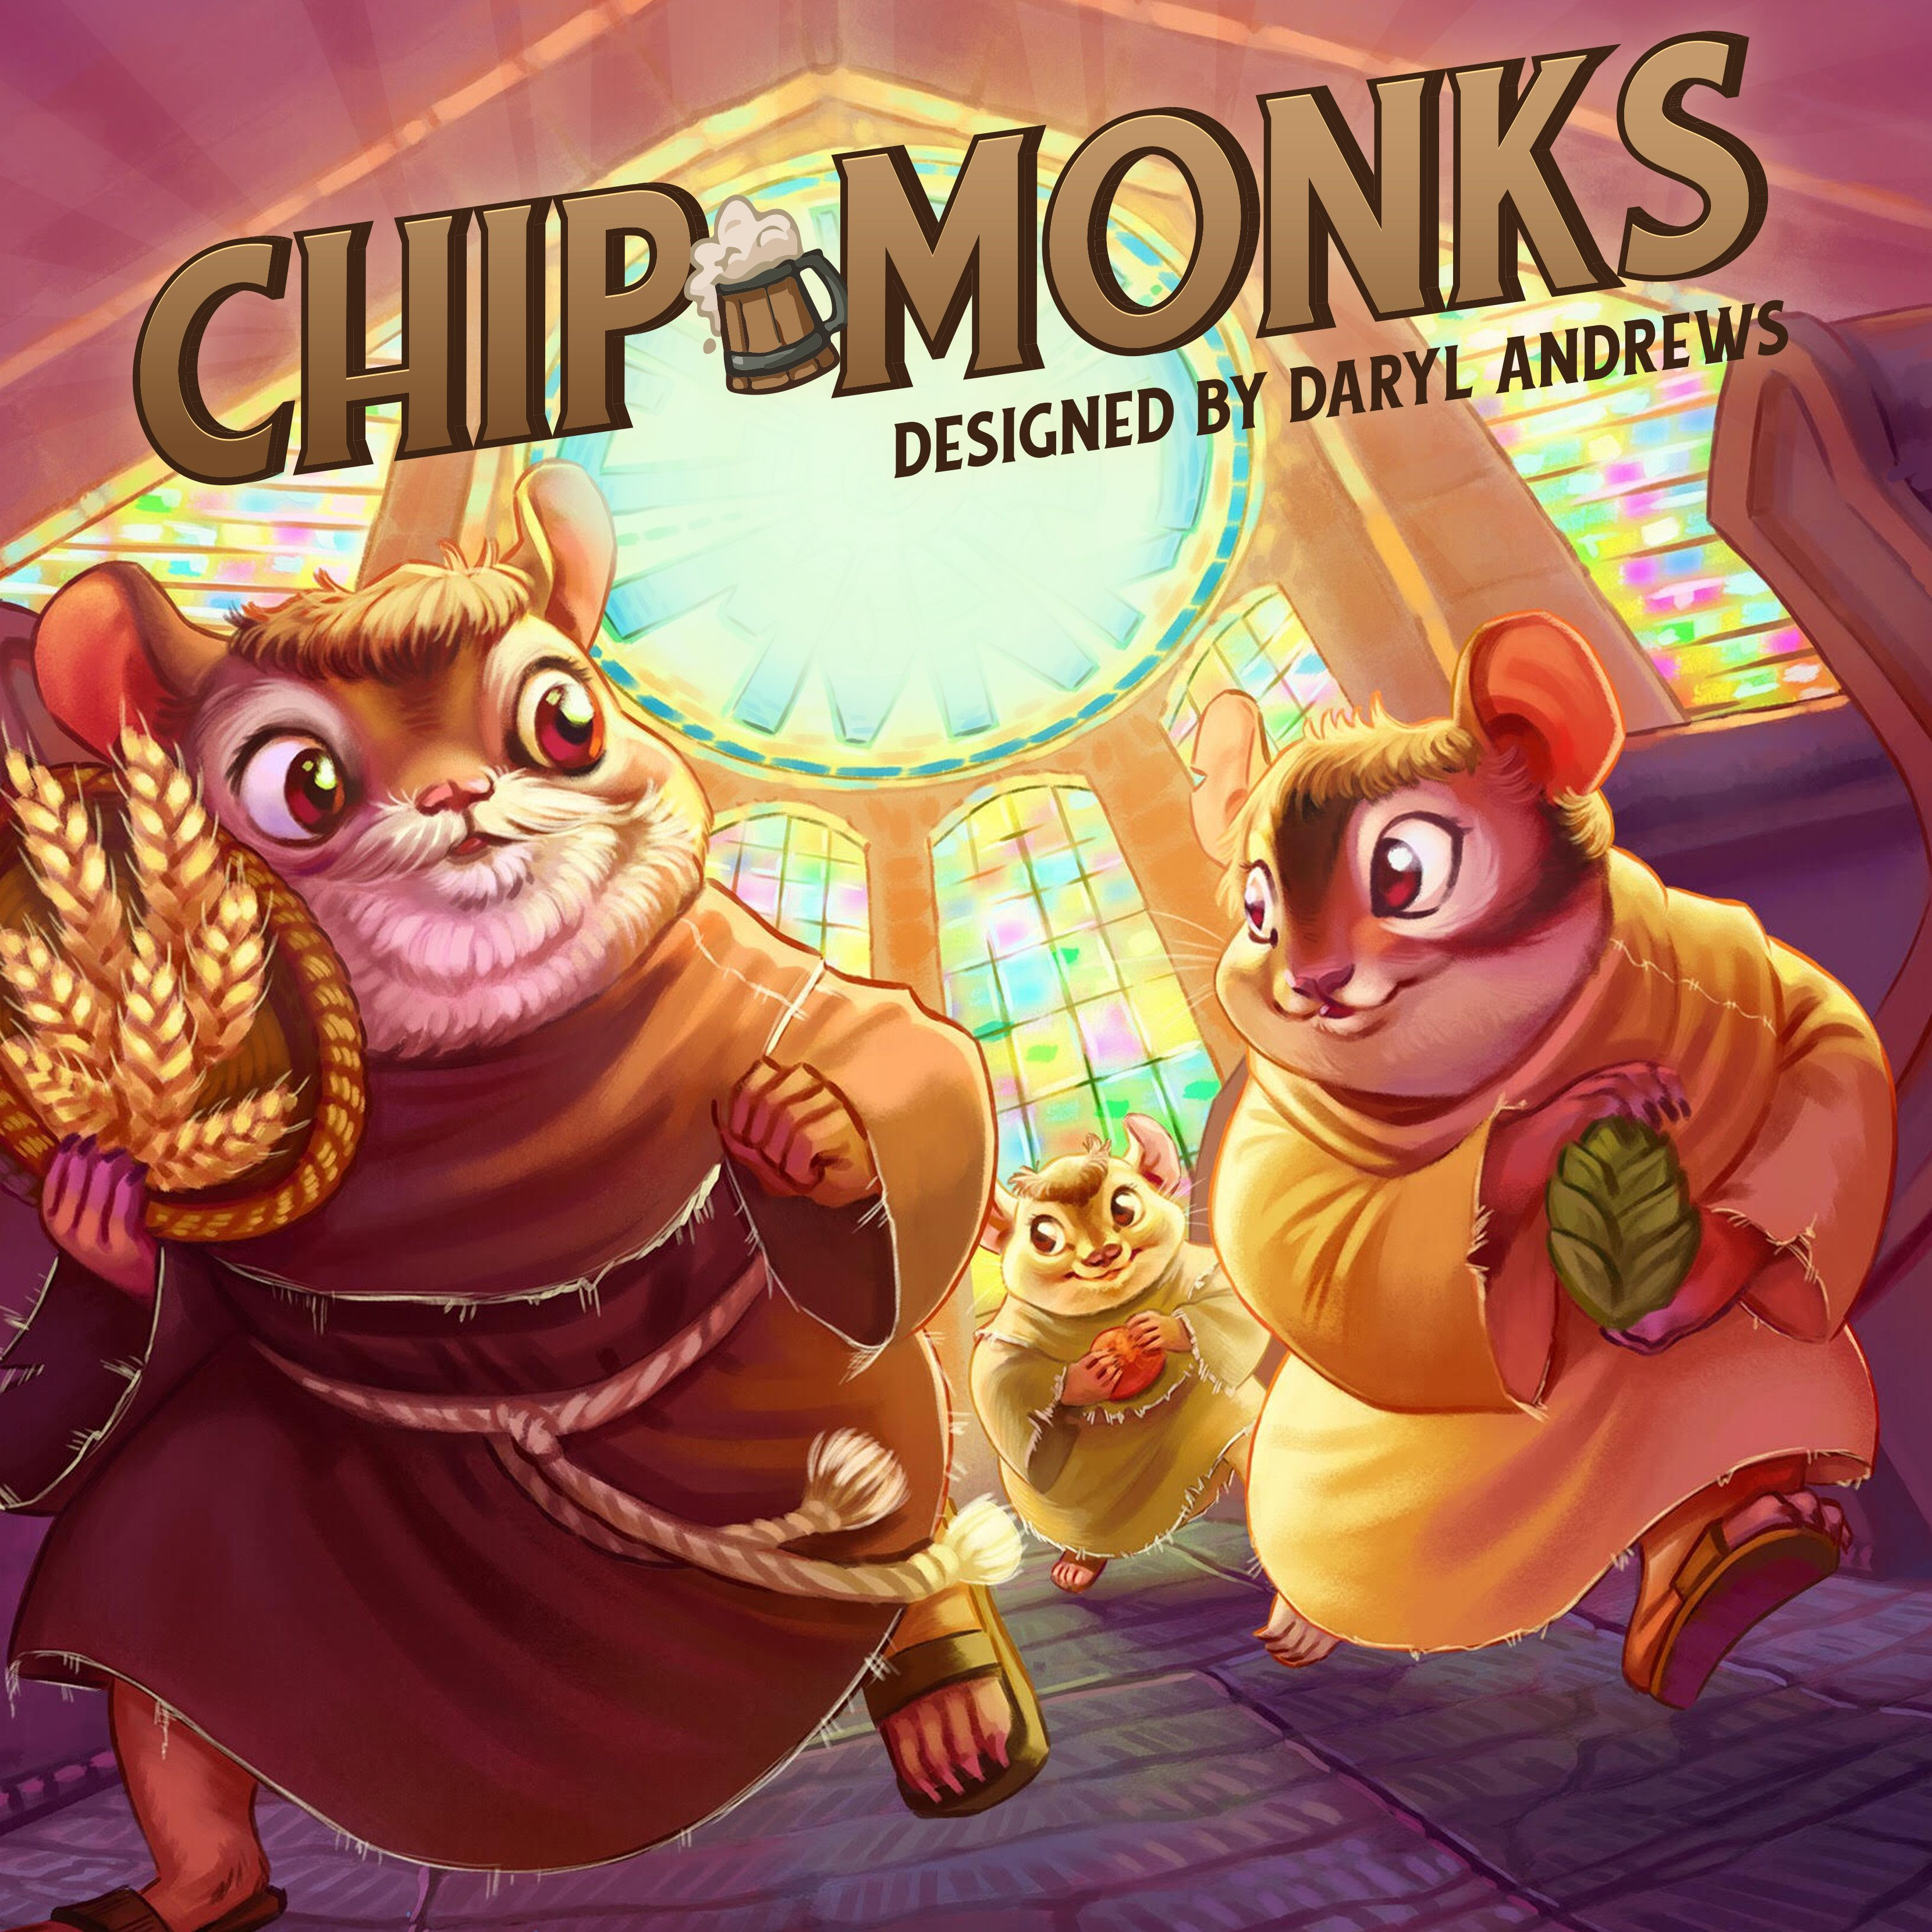 Chip Monks